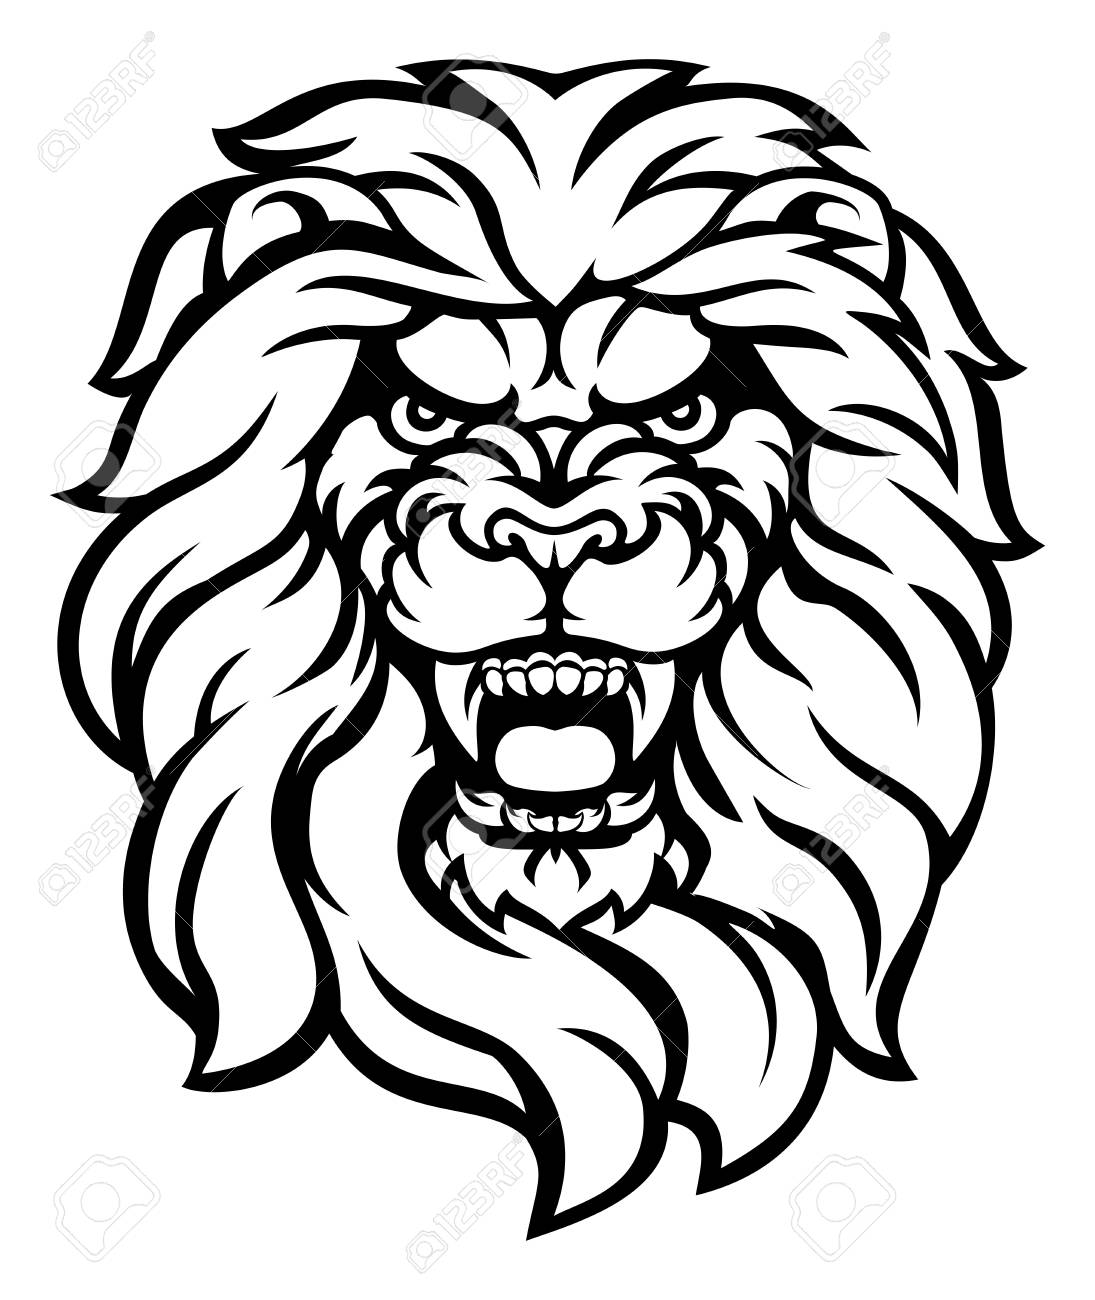 Lion Face Outline Drawing | Free download on ClipArtMag